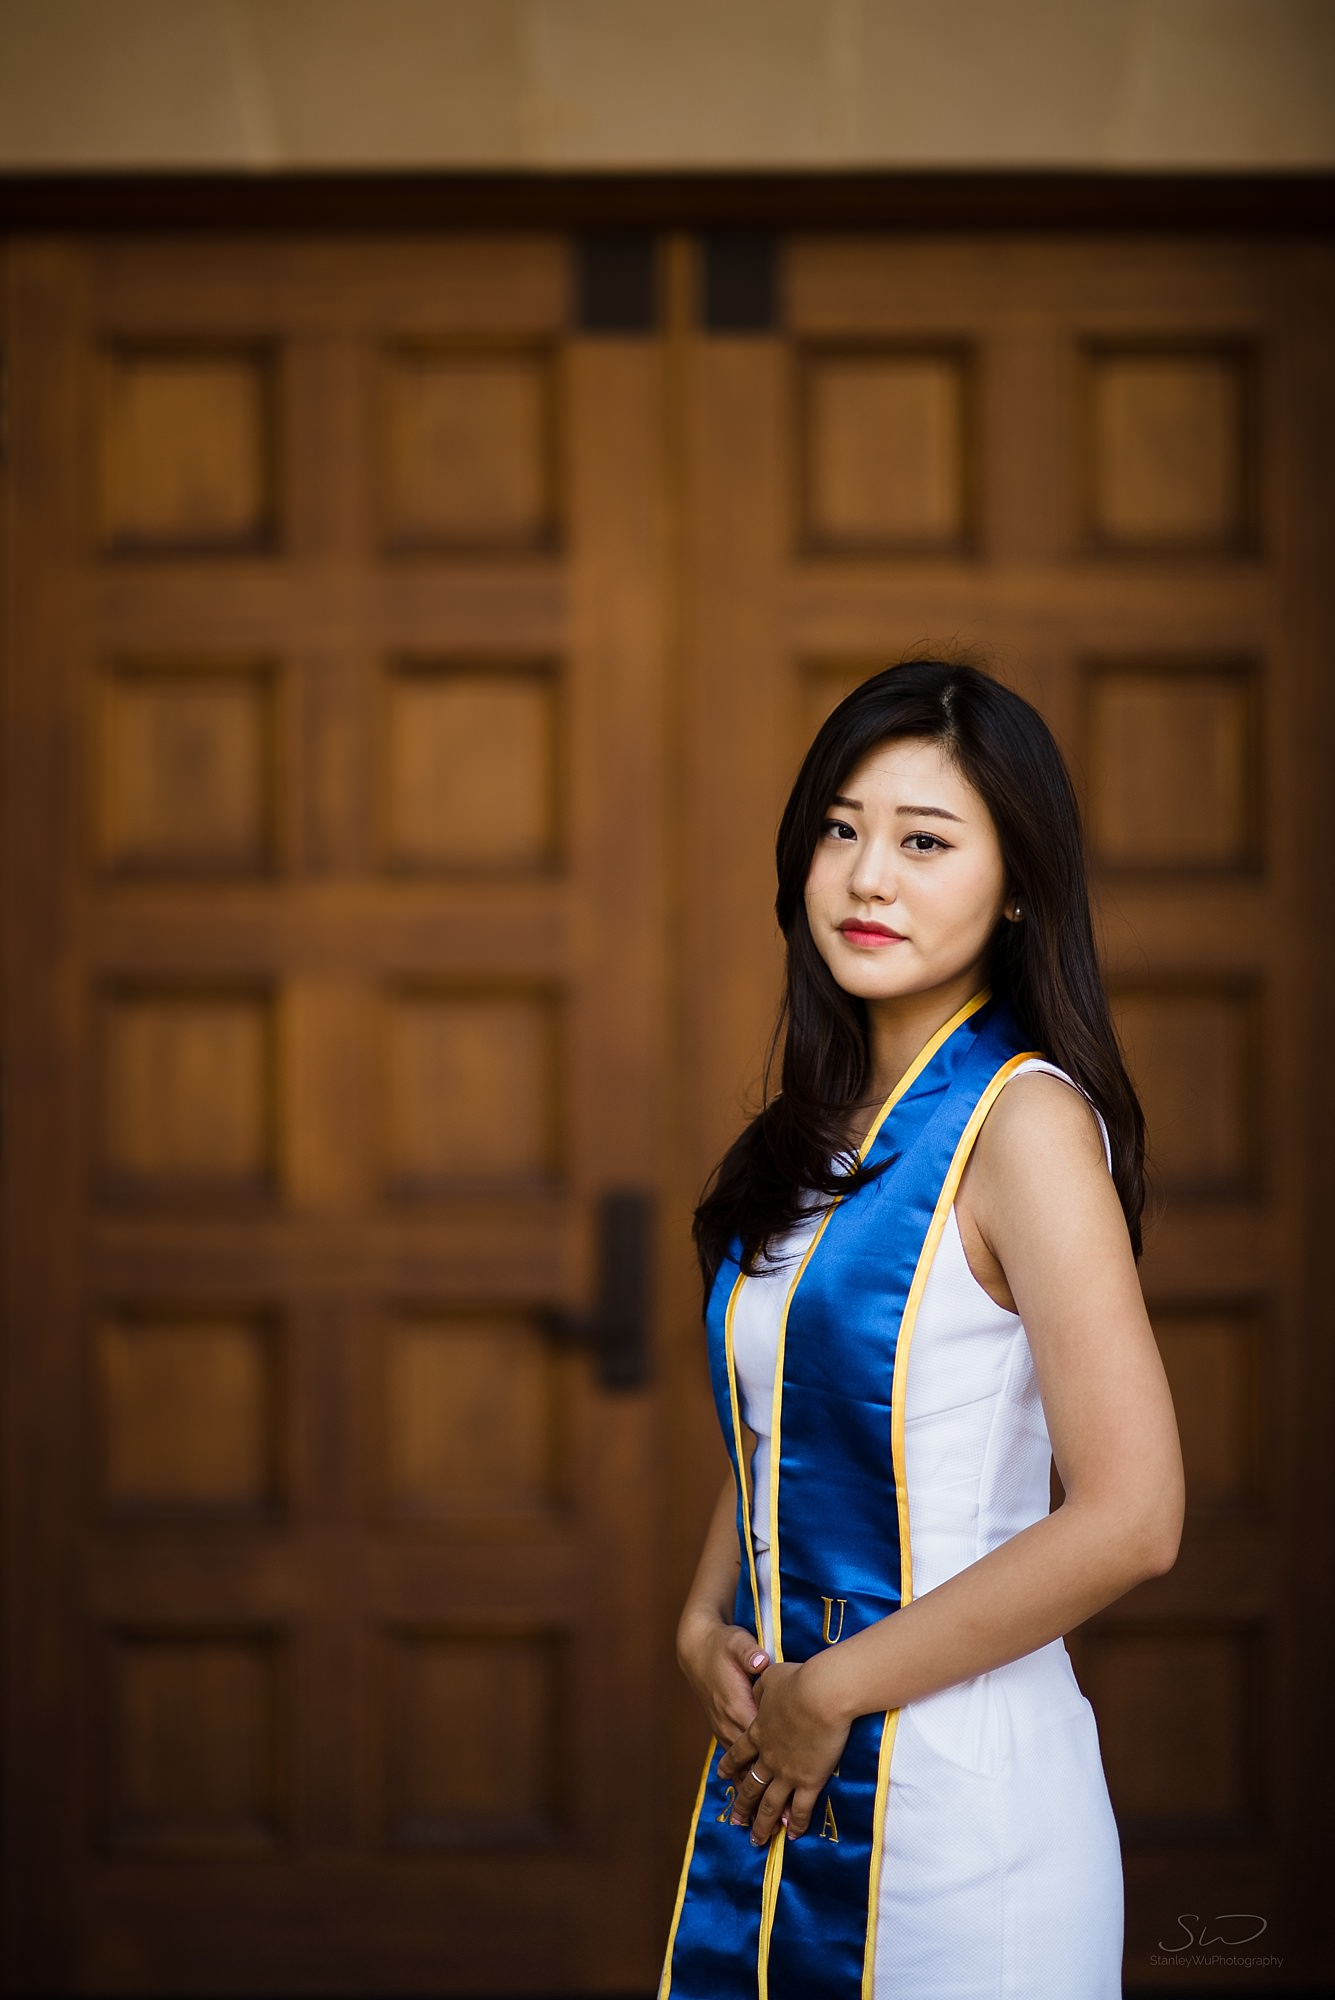 beautiful graduation senior portrait of a korean girl at ucla in los angeles